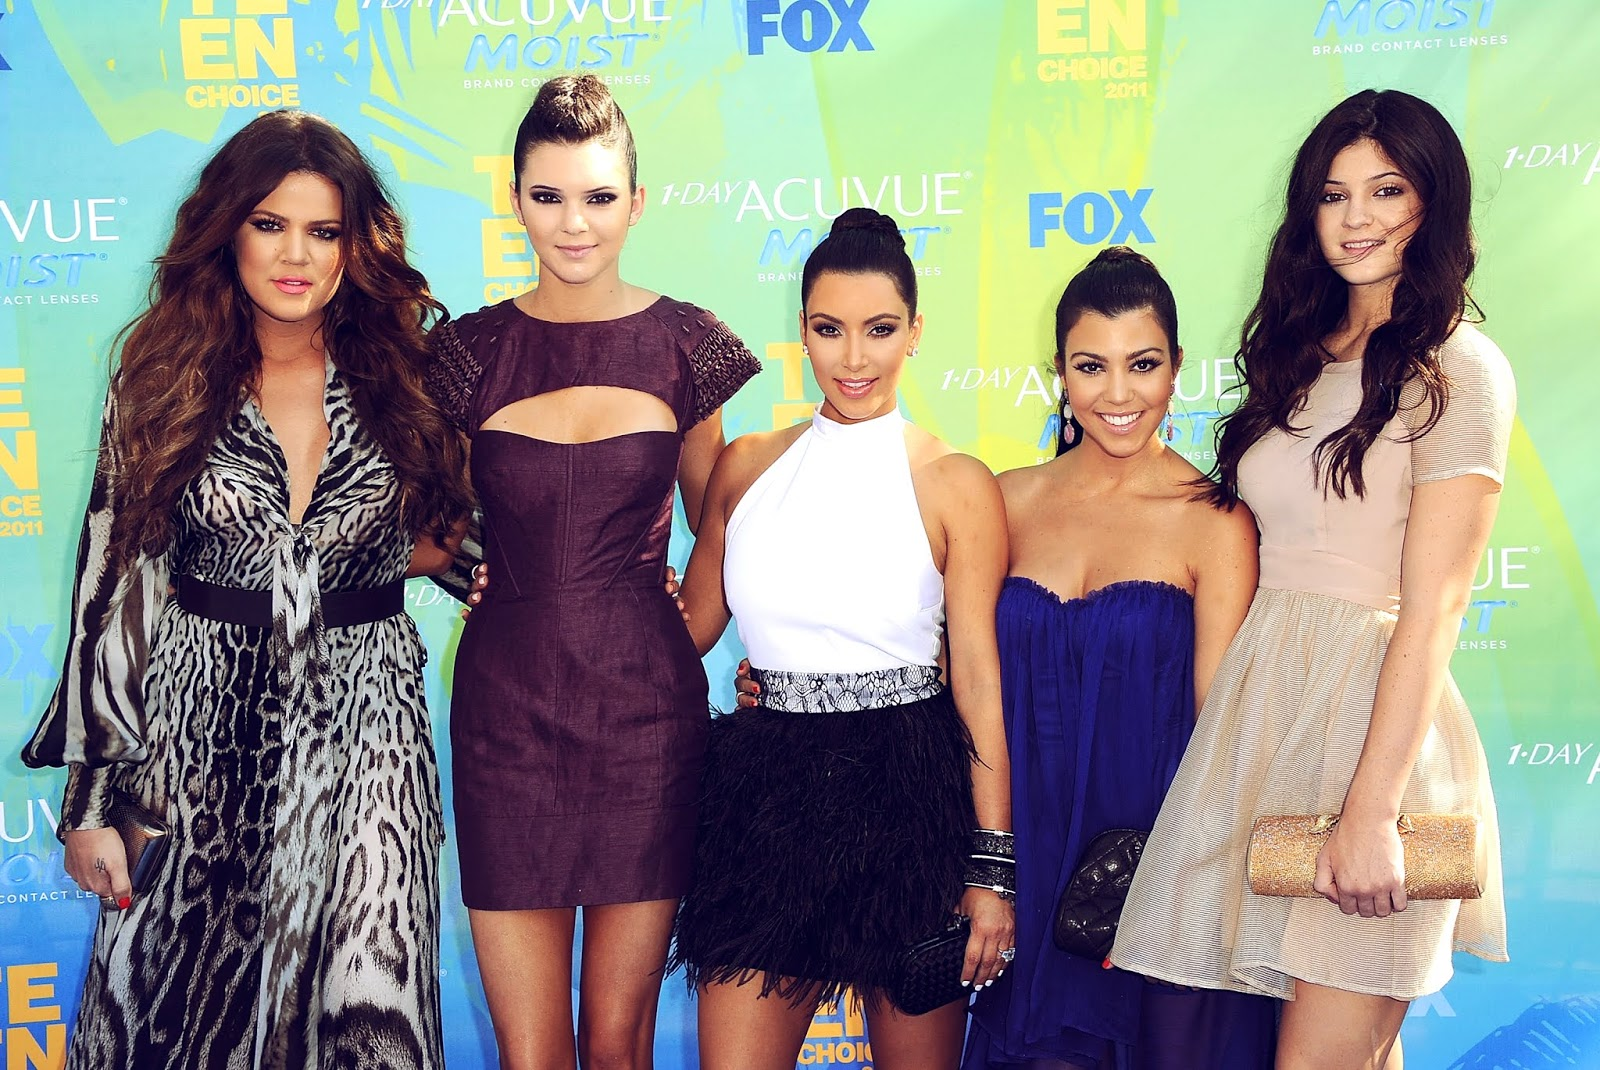 27- Teen Choice Awards in August 11, 2011